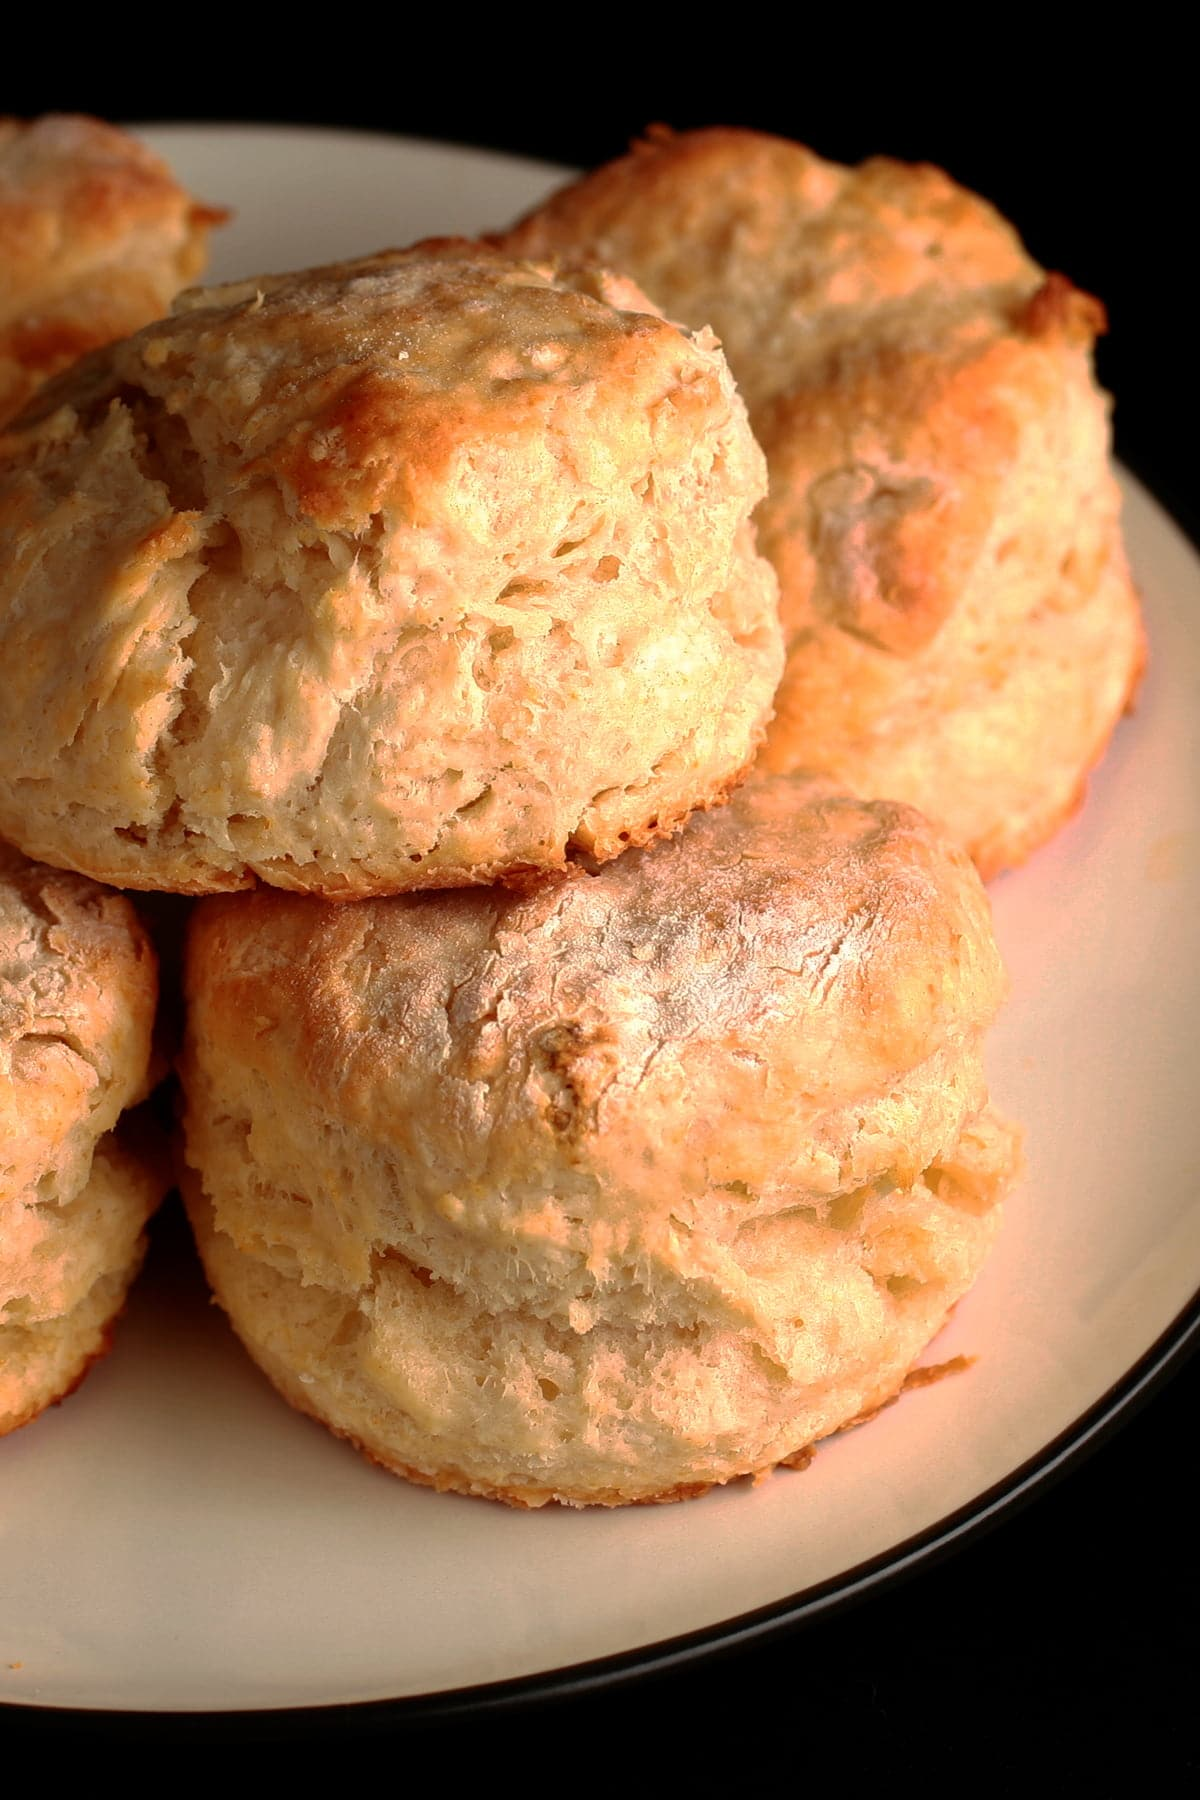 A small plate, stacked with golden baking powder biscuits.